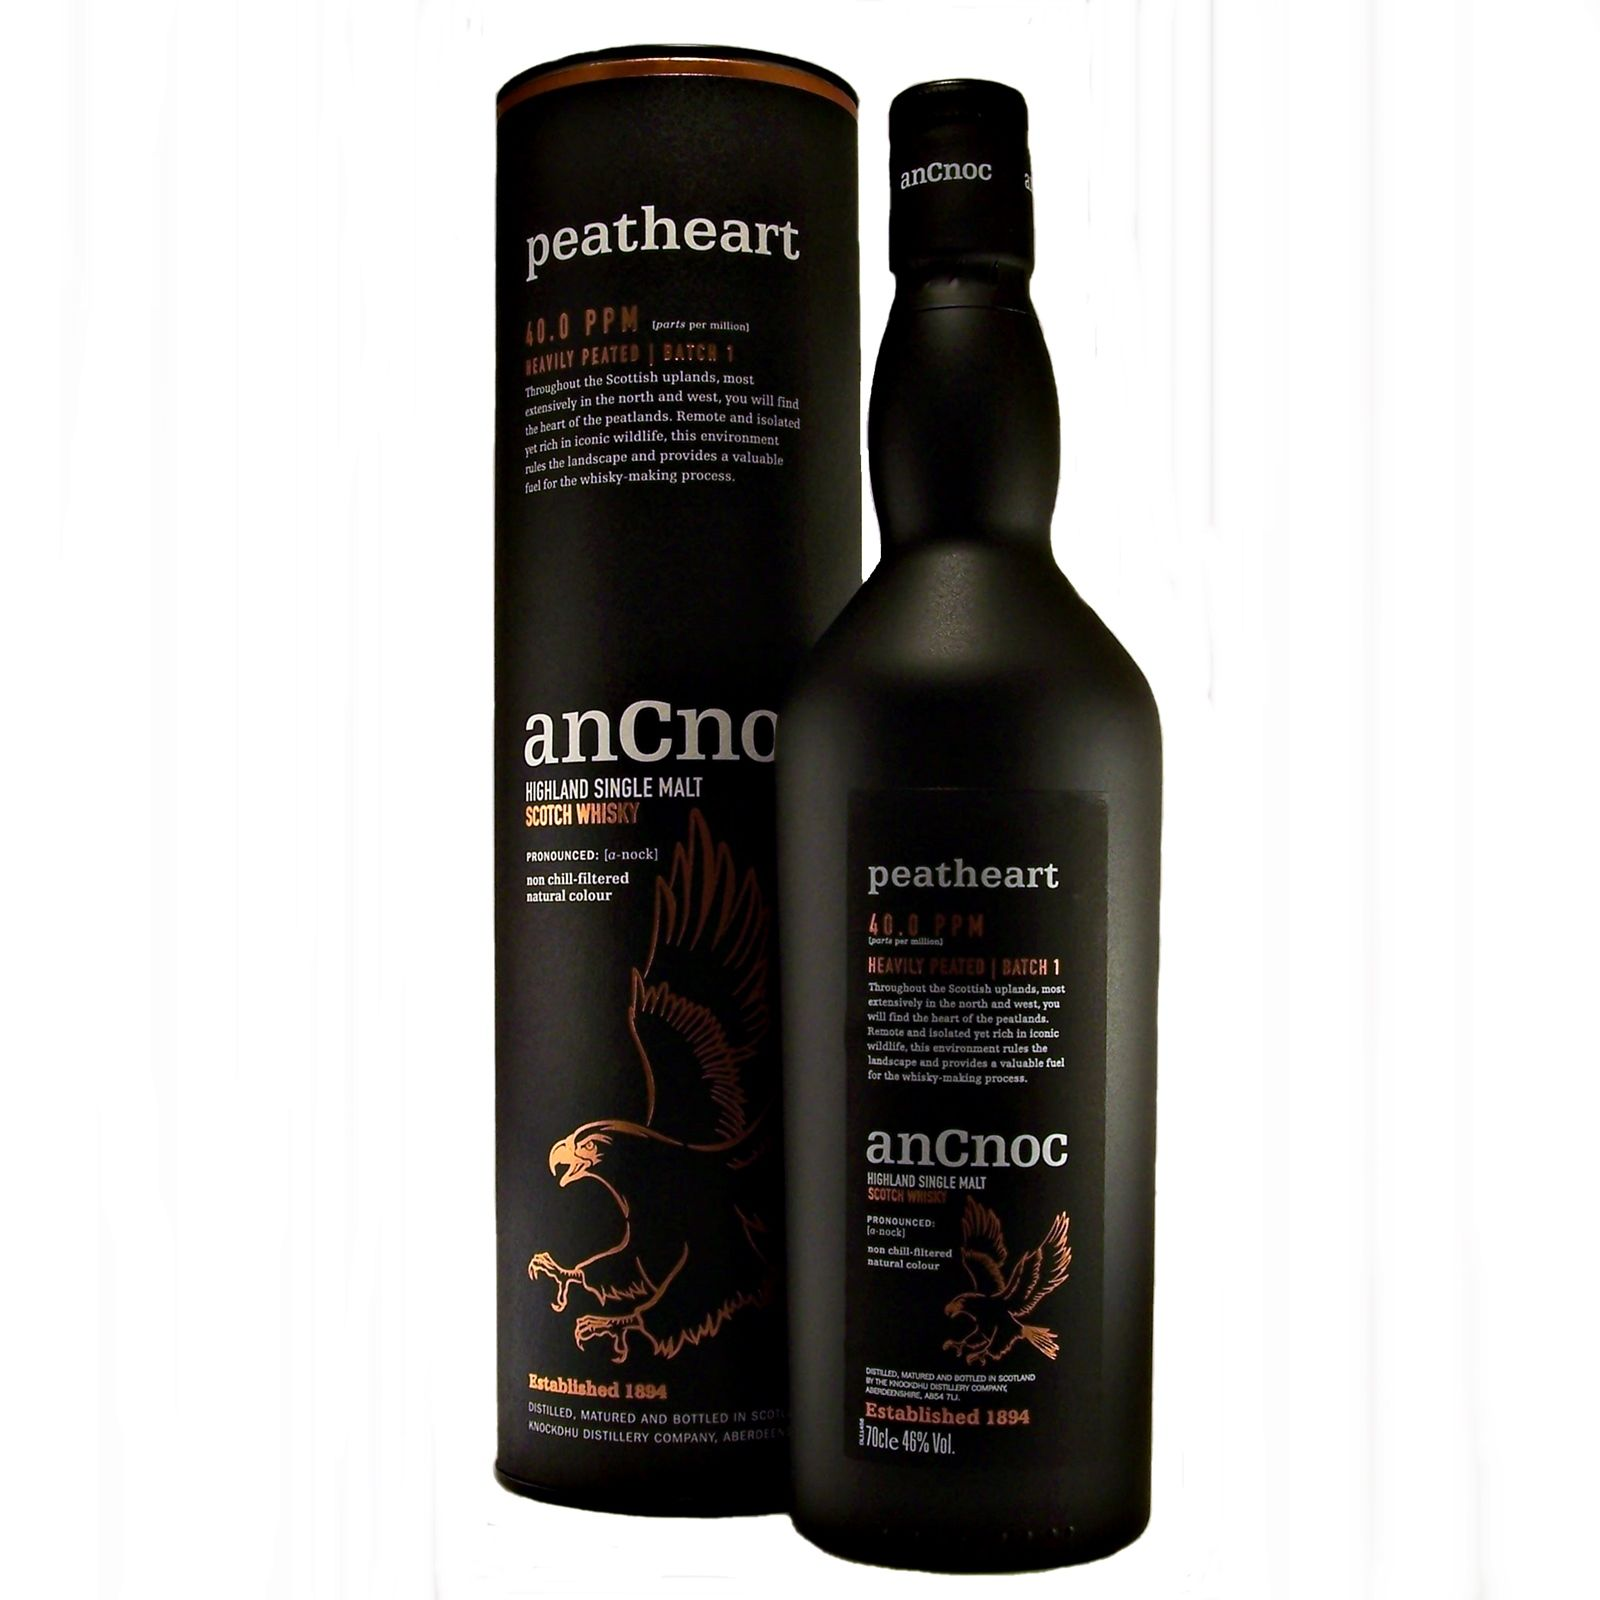 AnCnoc Peatheart Single Malt Whisky Batch 1 Knockdhu distillery available to buy online at specialist whisky shop whiskys.co.uk Stamford Bridge York